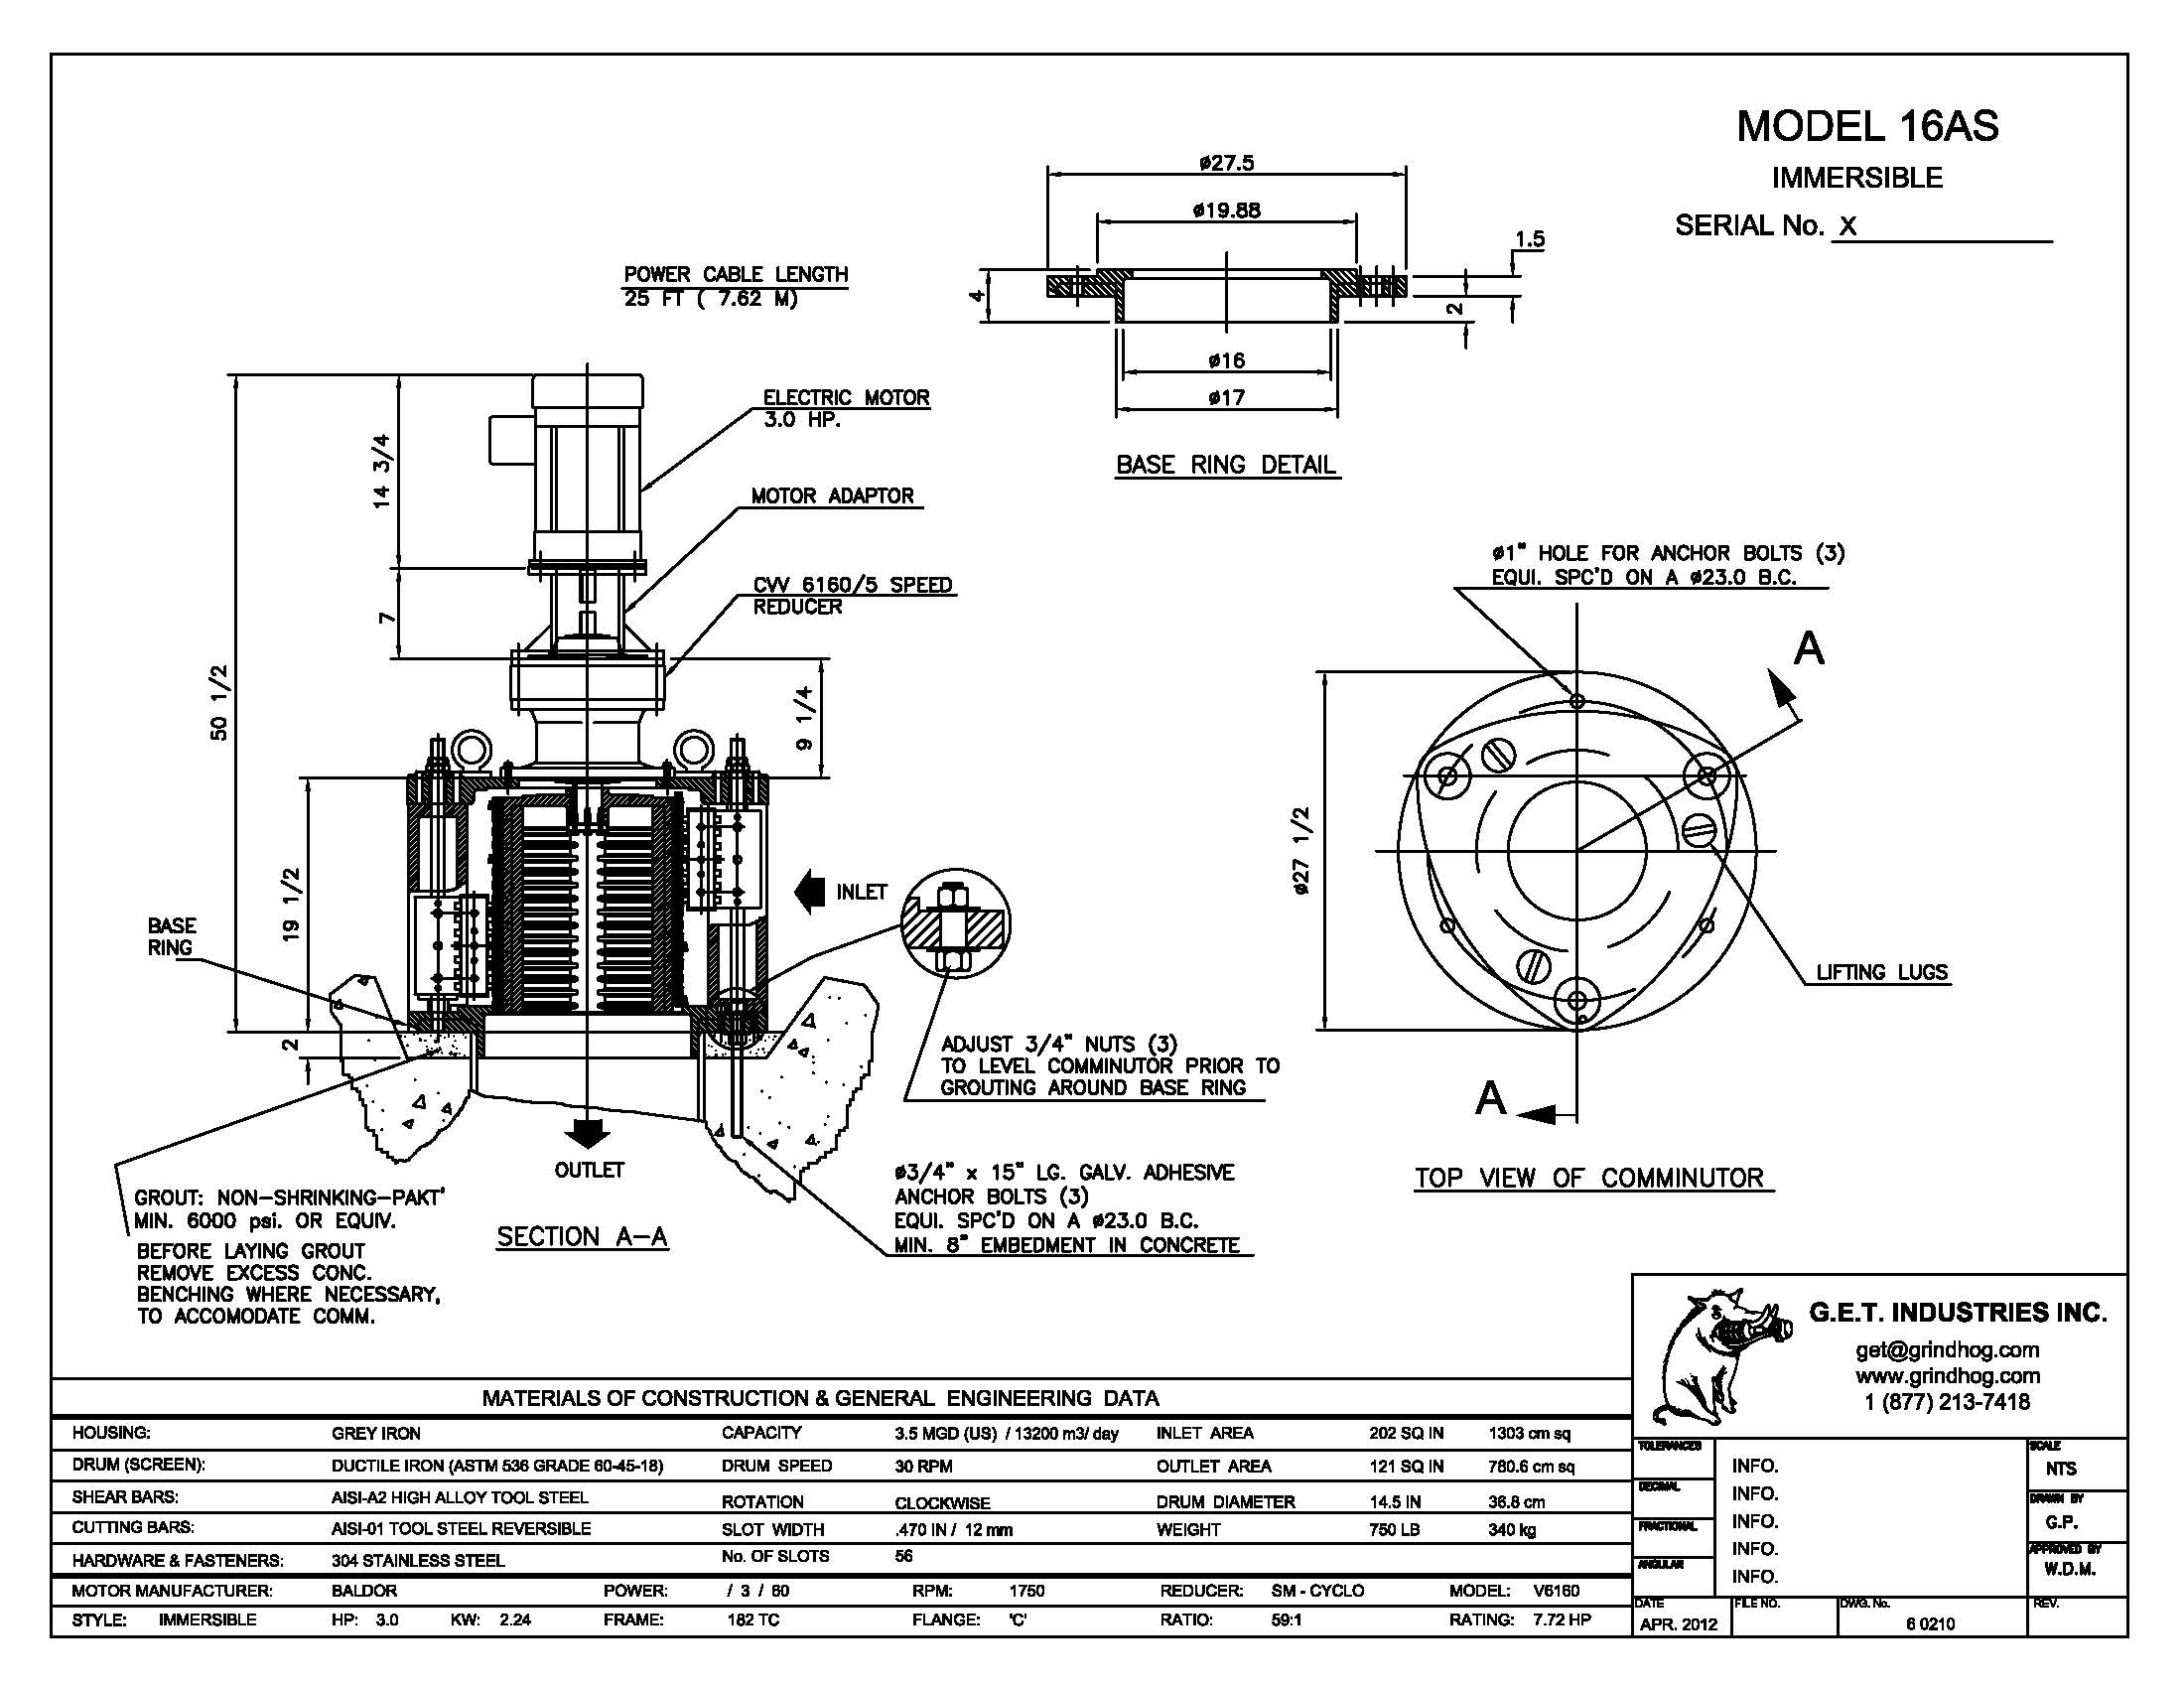 data drawing for Model 16AS